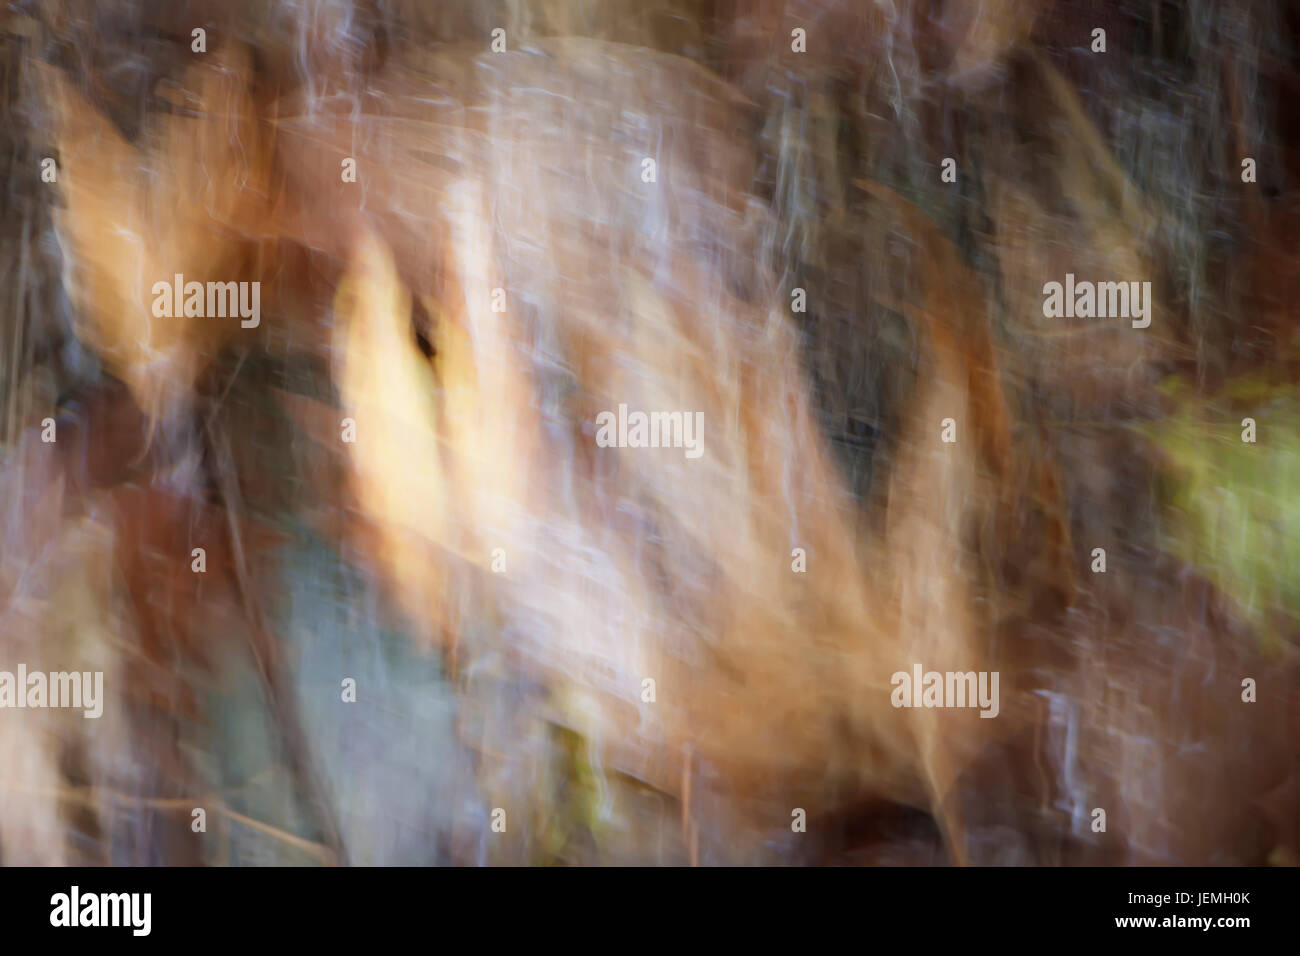 Blurred abstract water background - Stock Image